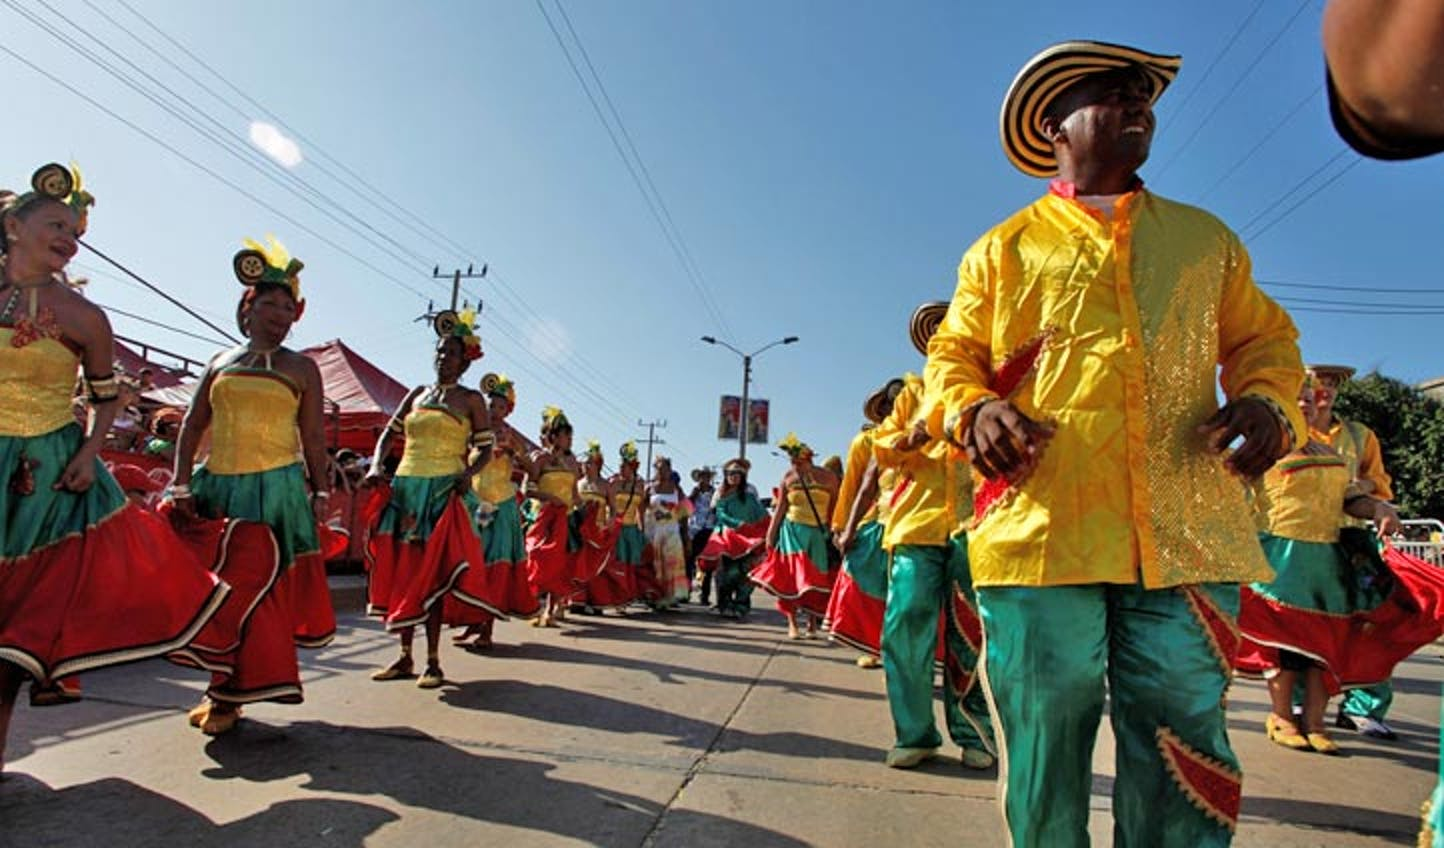 Carnival processions in Colombia